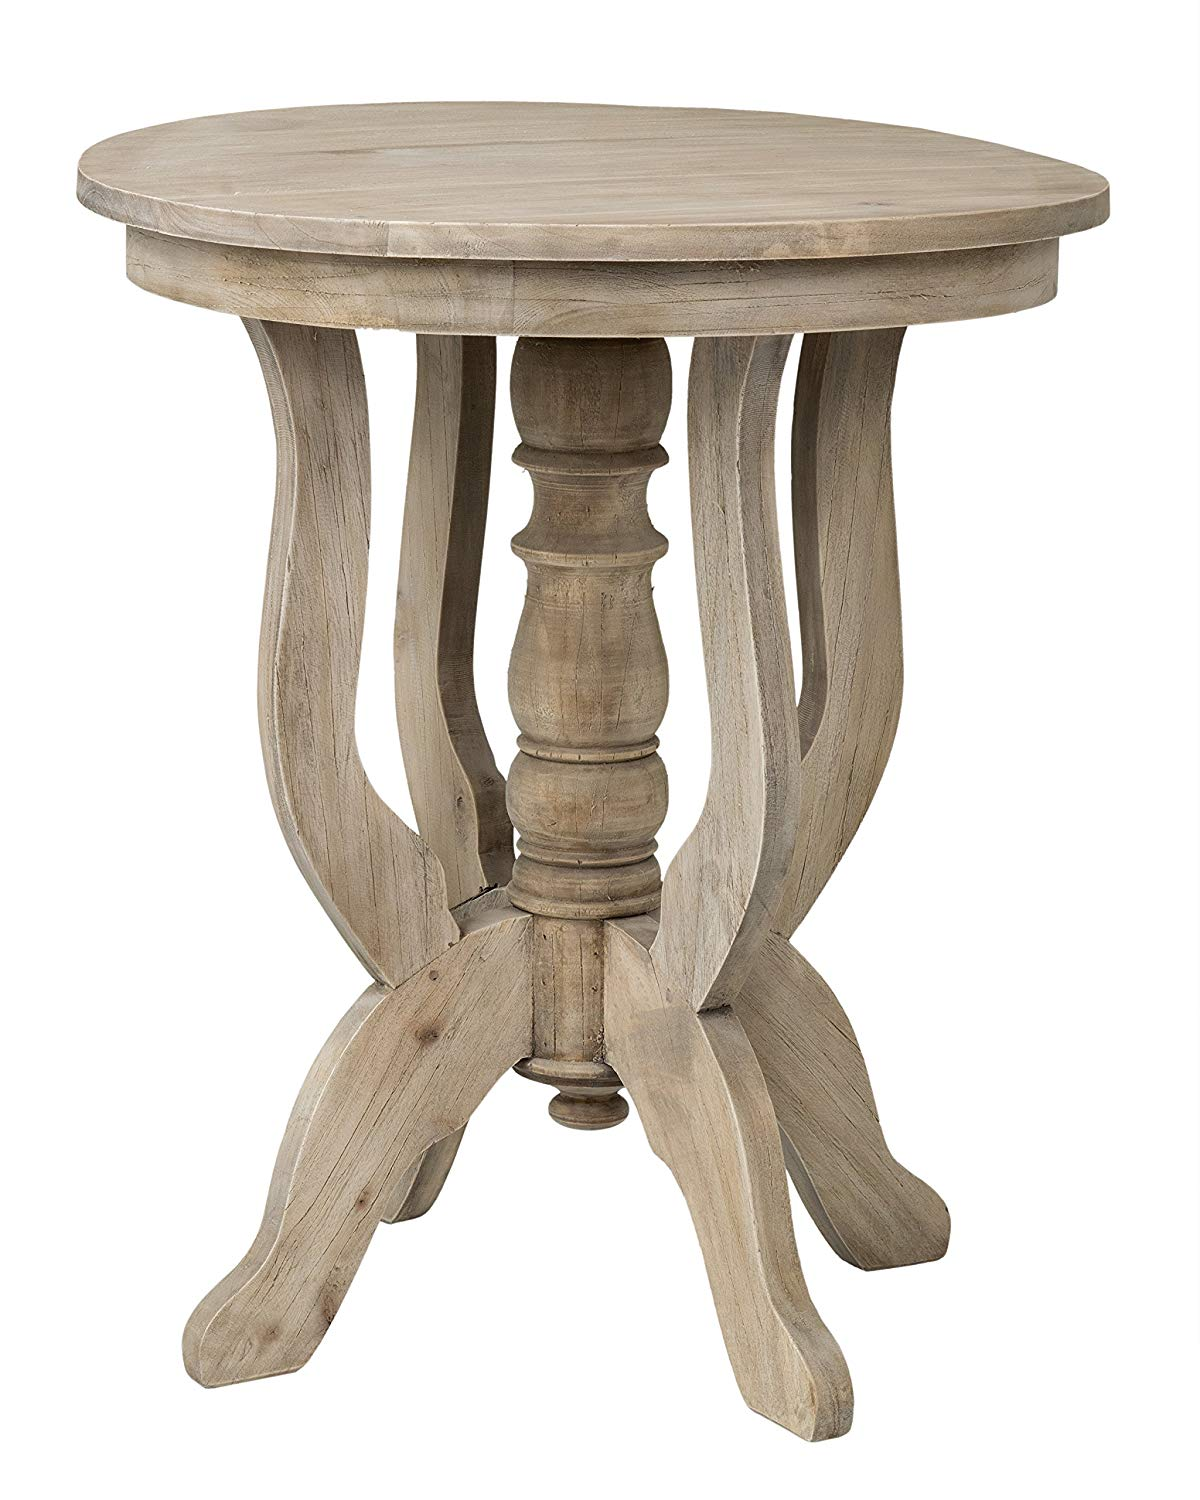 east main boyd brown rubber wood round accent table kitchen dining foldable trestle small glass desk baroque side marble occasional console lamps target threshold cabinet nesting